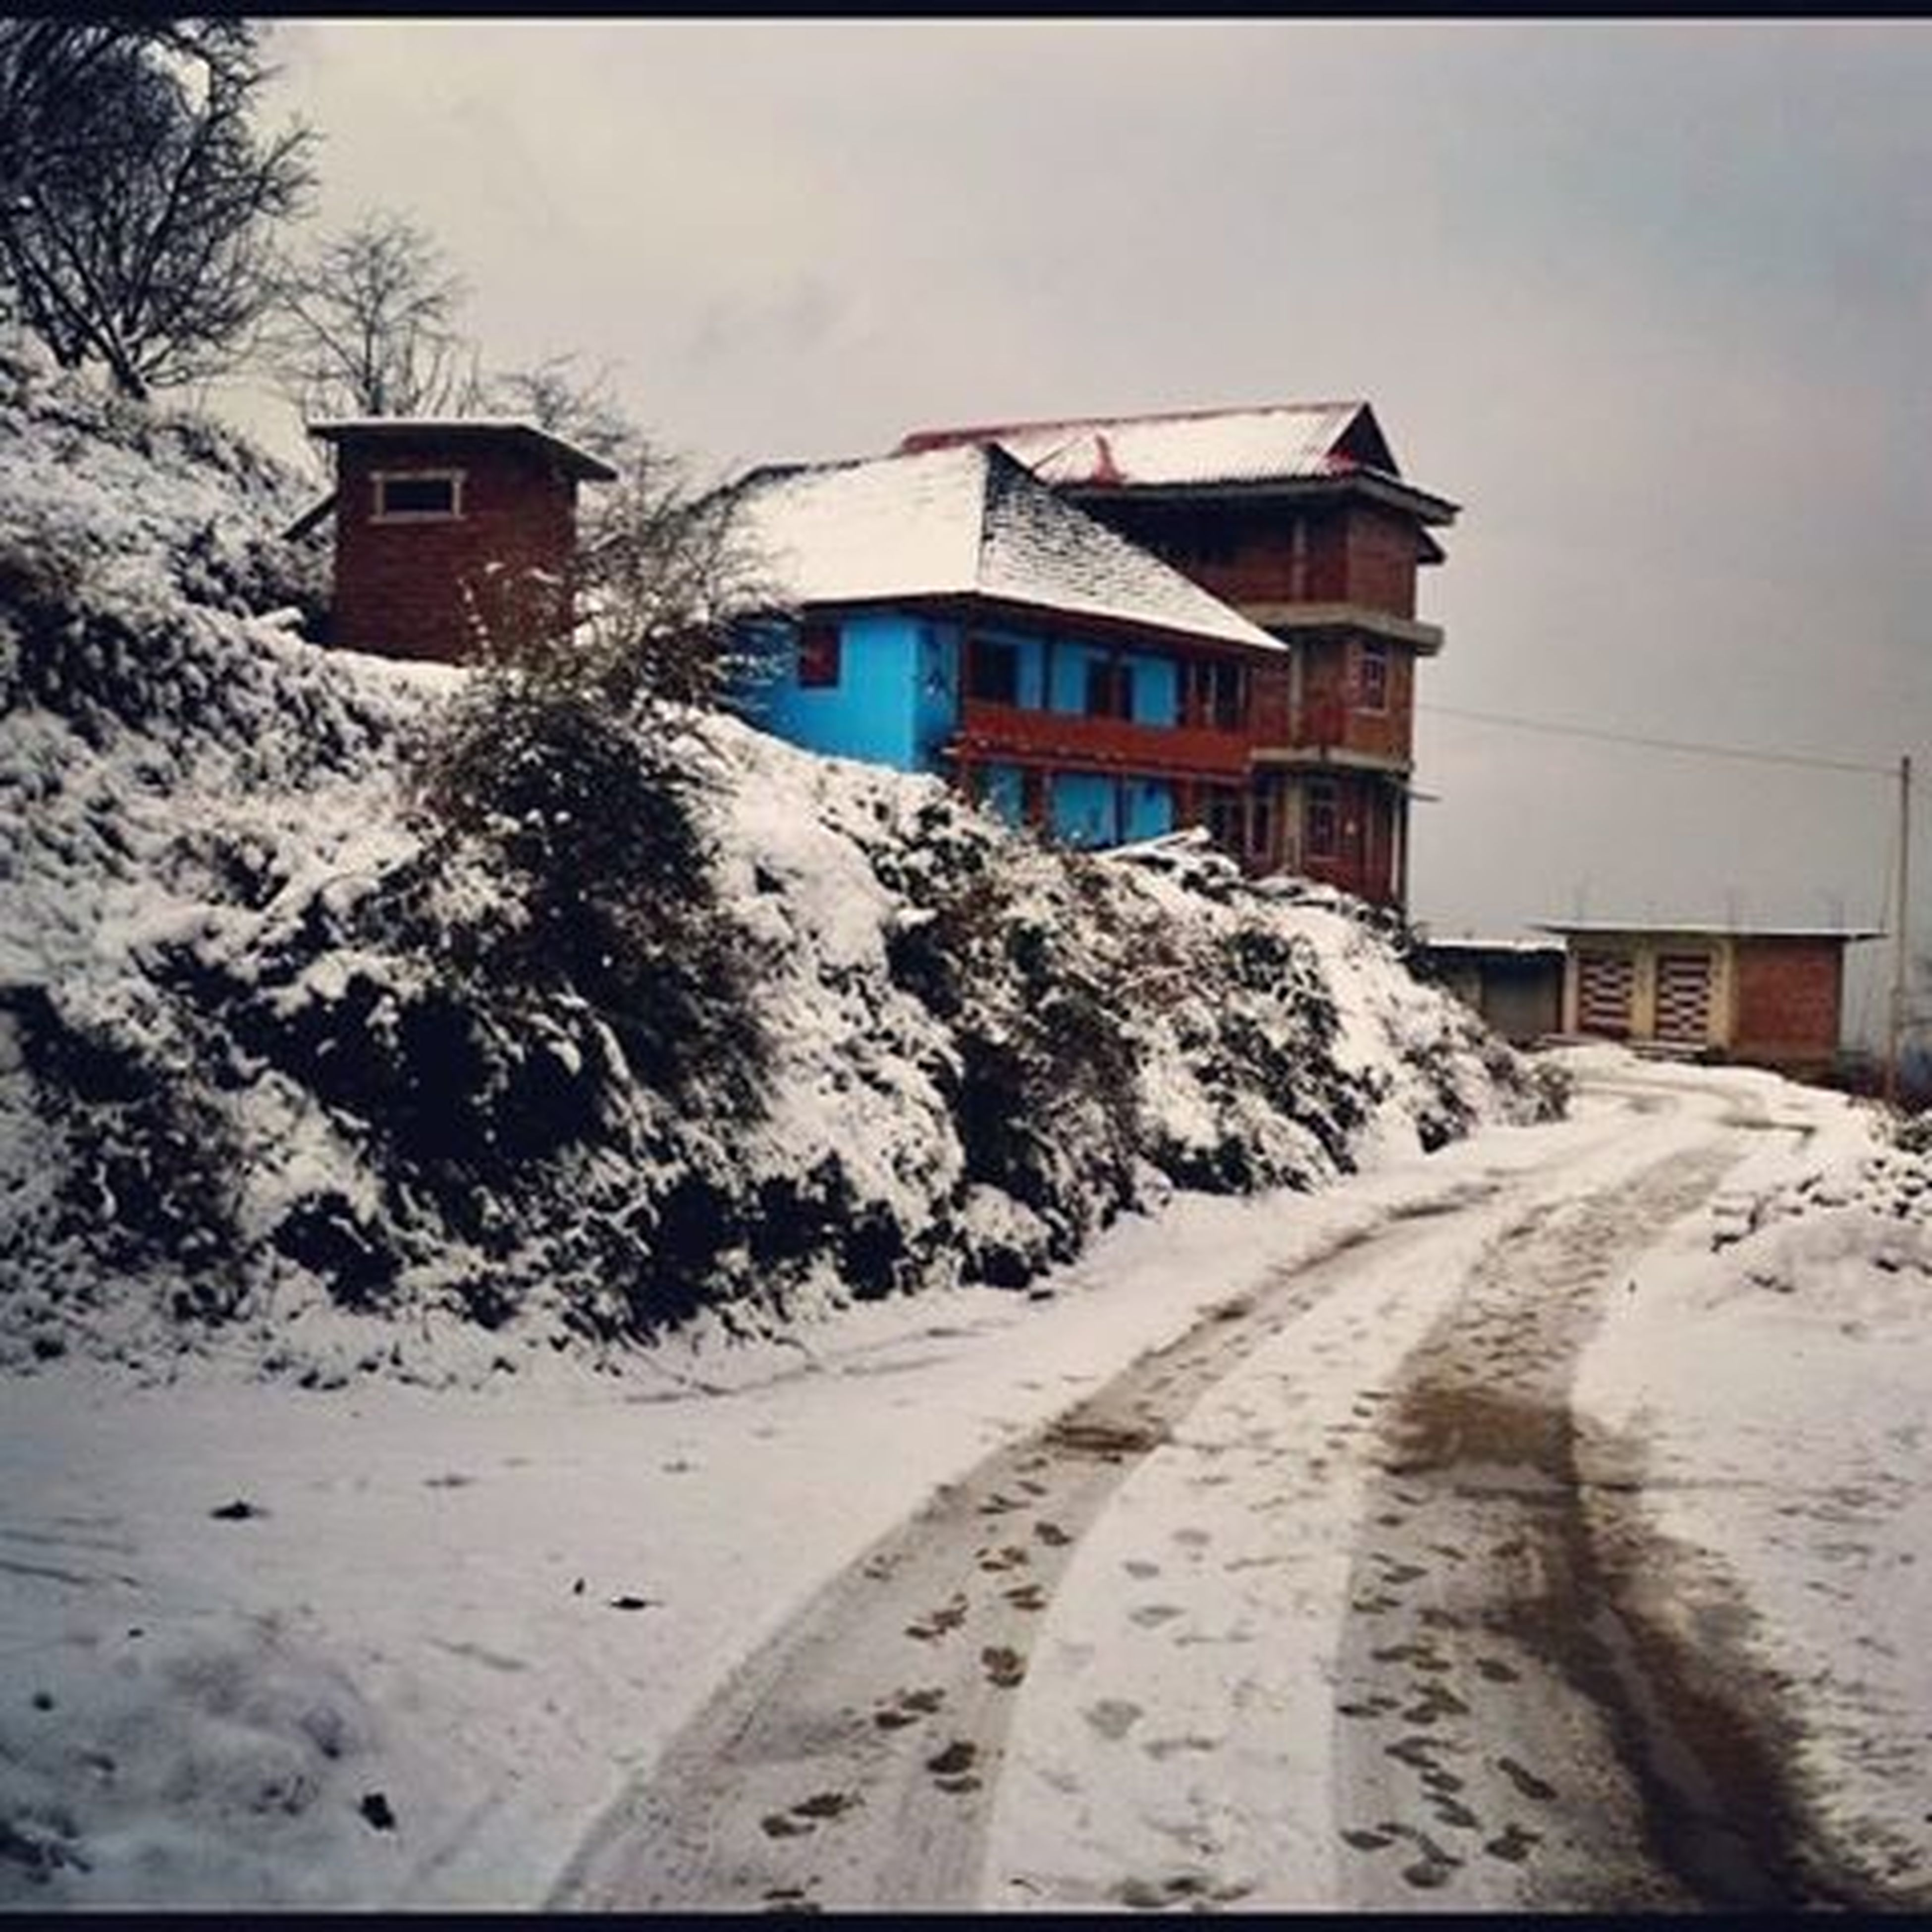 sky, architecture, built structure, building exterior, transportation, road, cloud - sky, snow, house, the way forward, cloud, day, winter, cold temperature, street, outdoors, no people, mountain, nature, weather